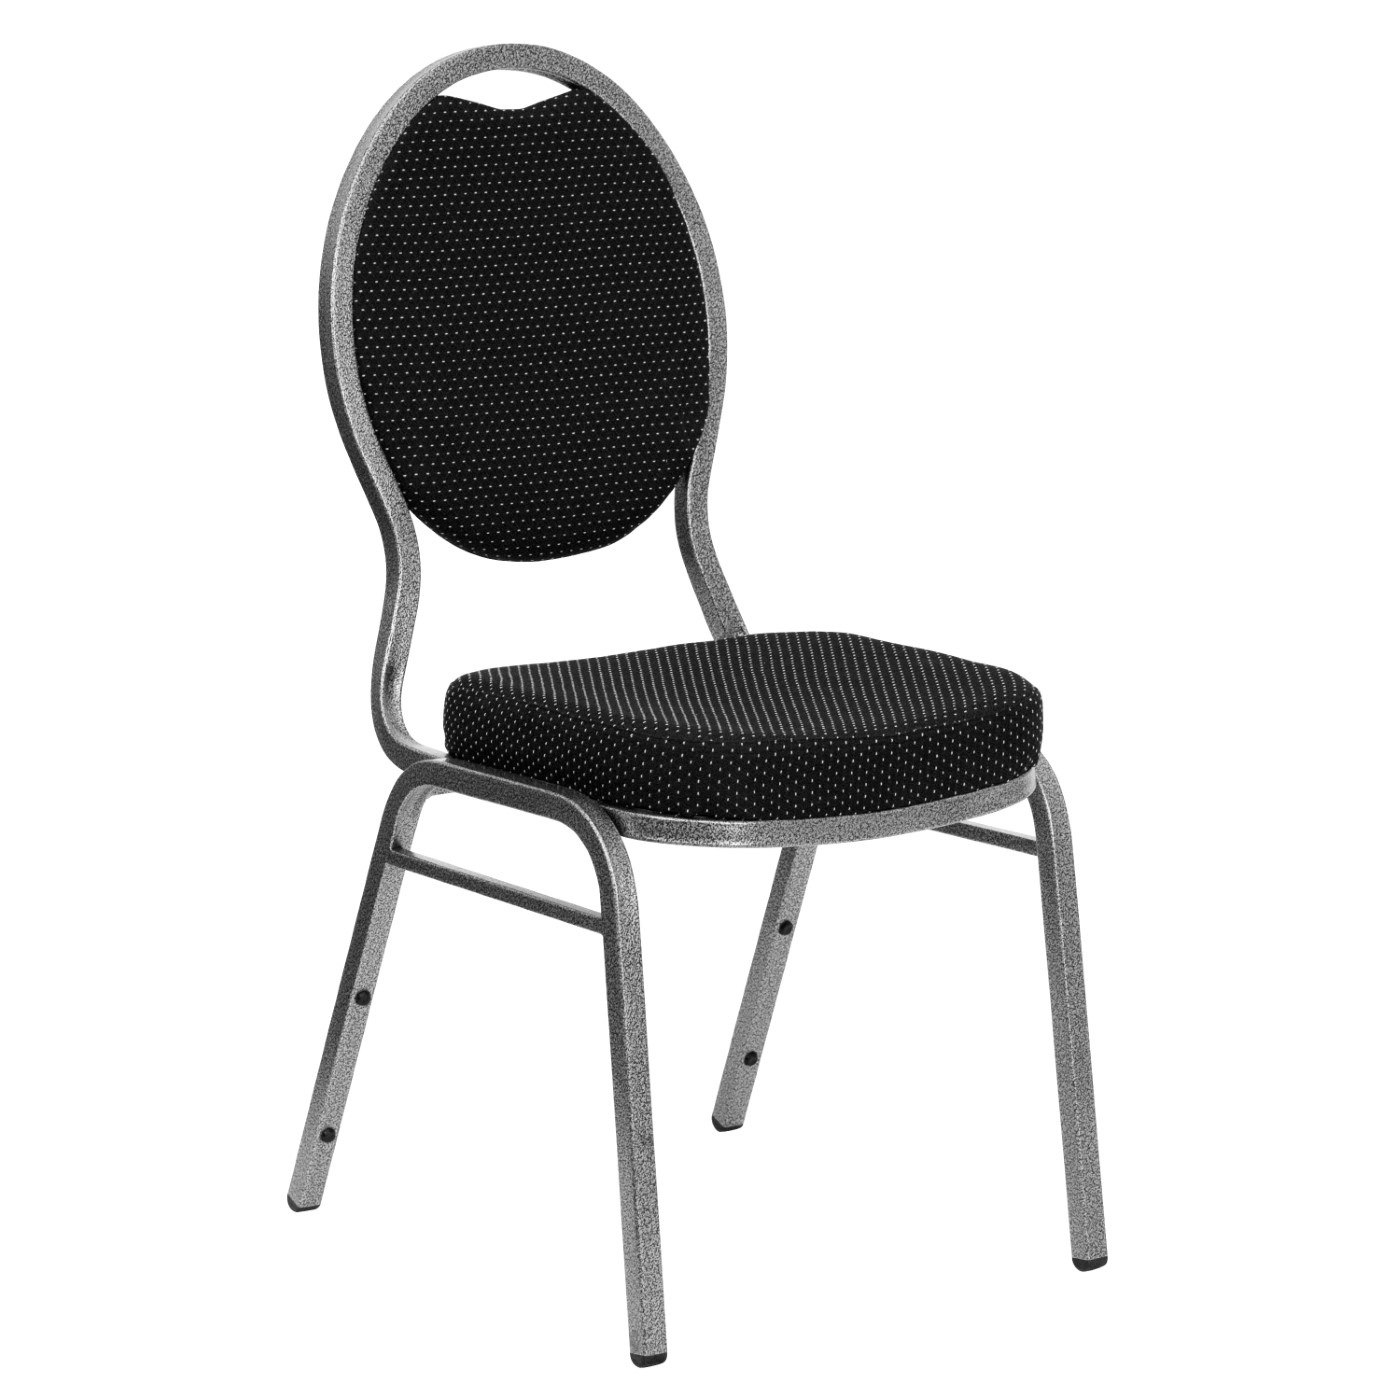 TOUGH ENOUGH Series Teardrop Back Stacking Banquet Chair in Black Patterned Fabric - Silver Vein Frame